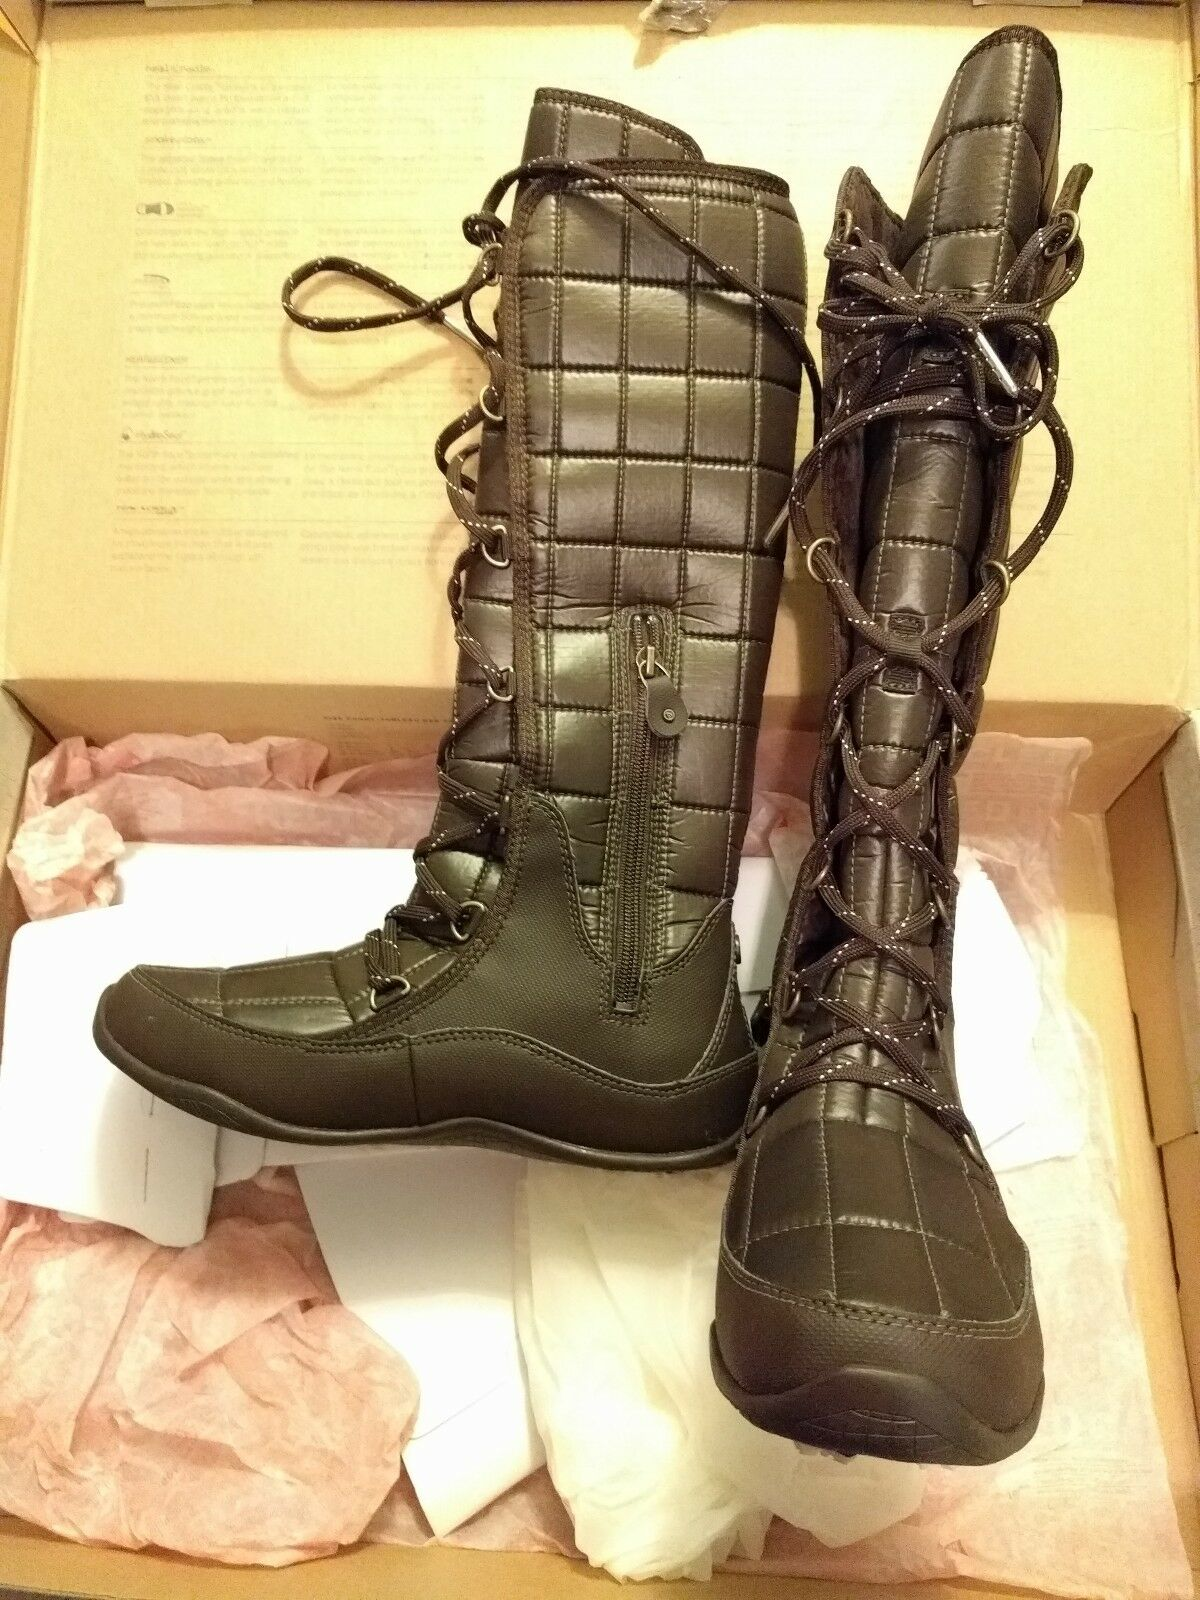 The North Face Marronee Insulated Waterproof Icepick Thermoball Knee high stivali 7.5